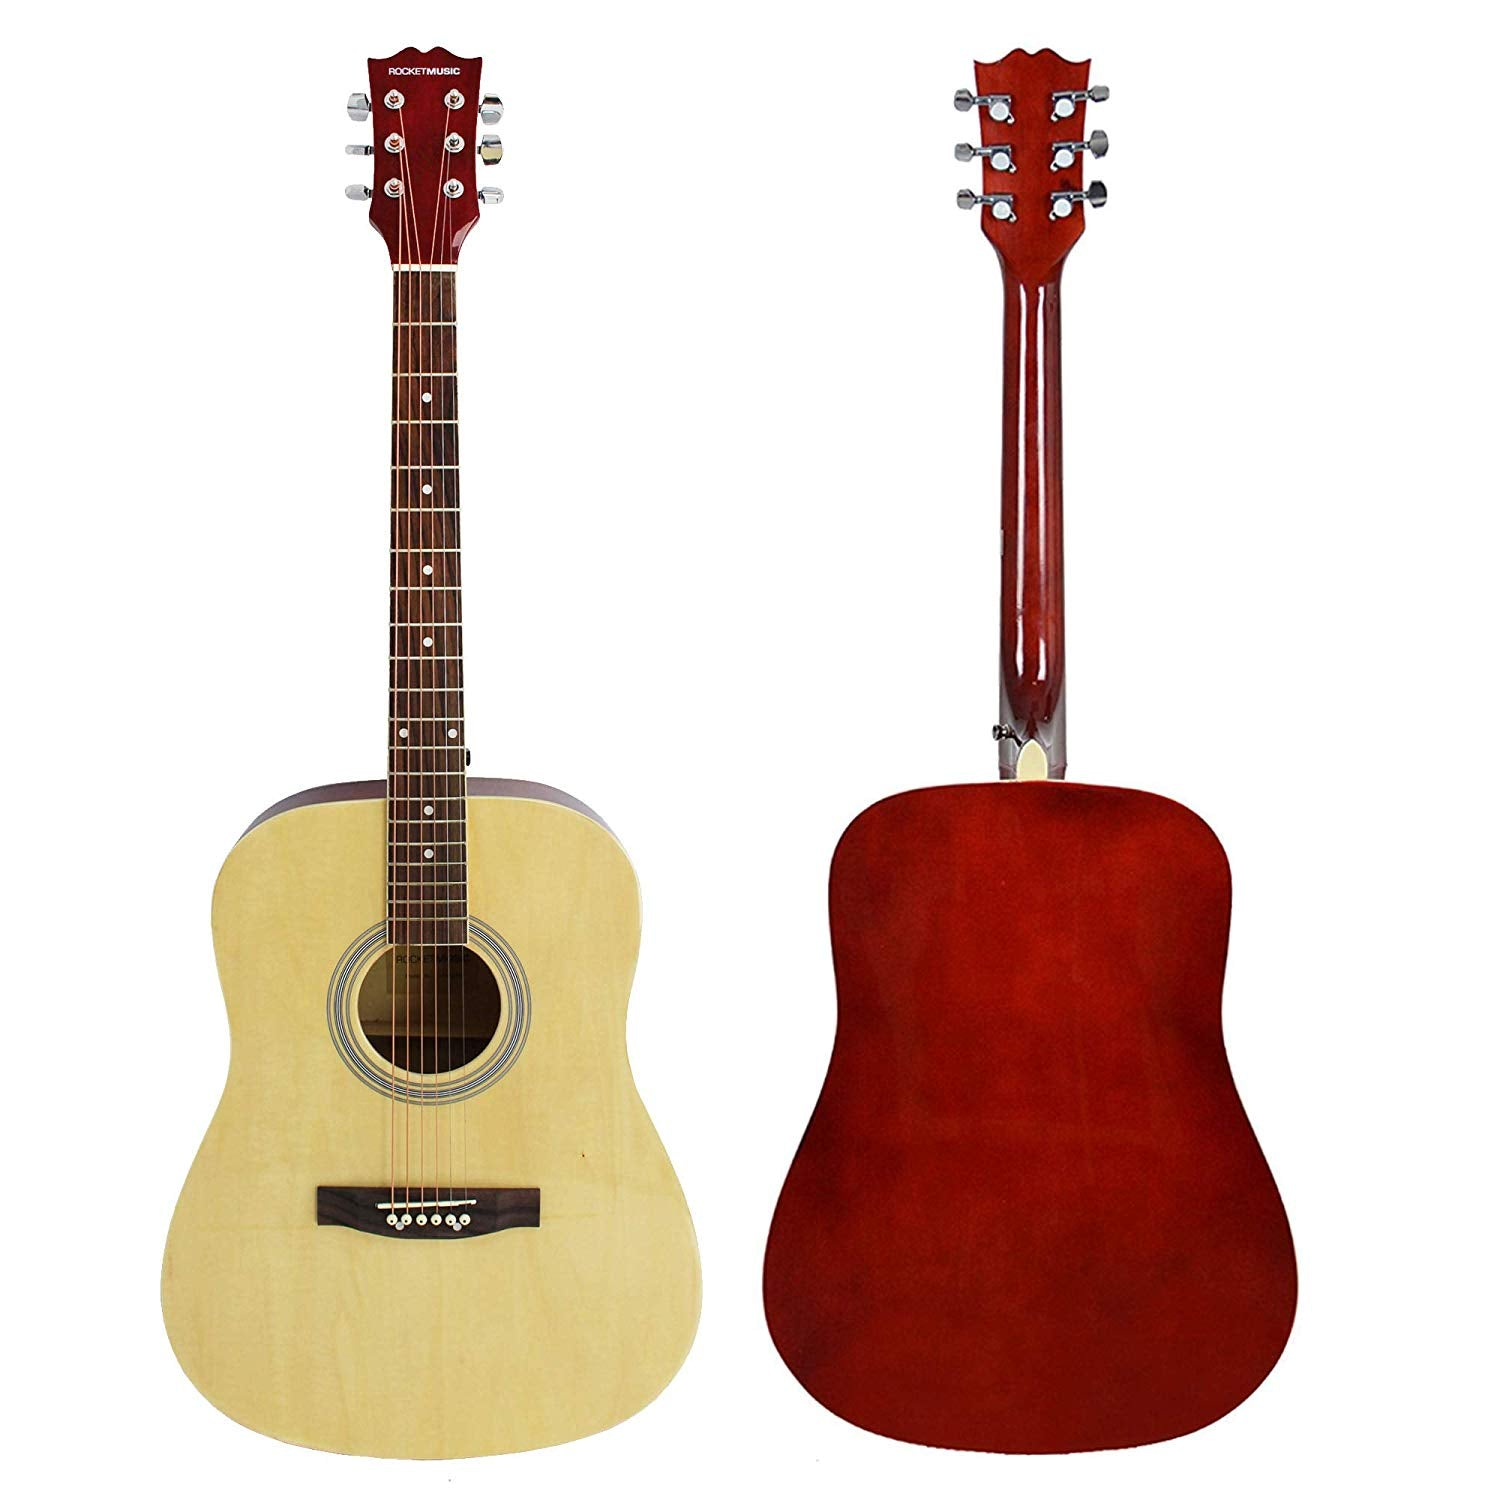 Rocket Dreadnought Acoustic Guitar Pack - Full size